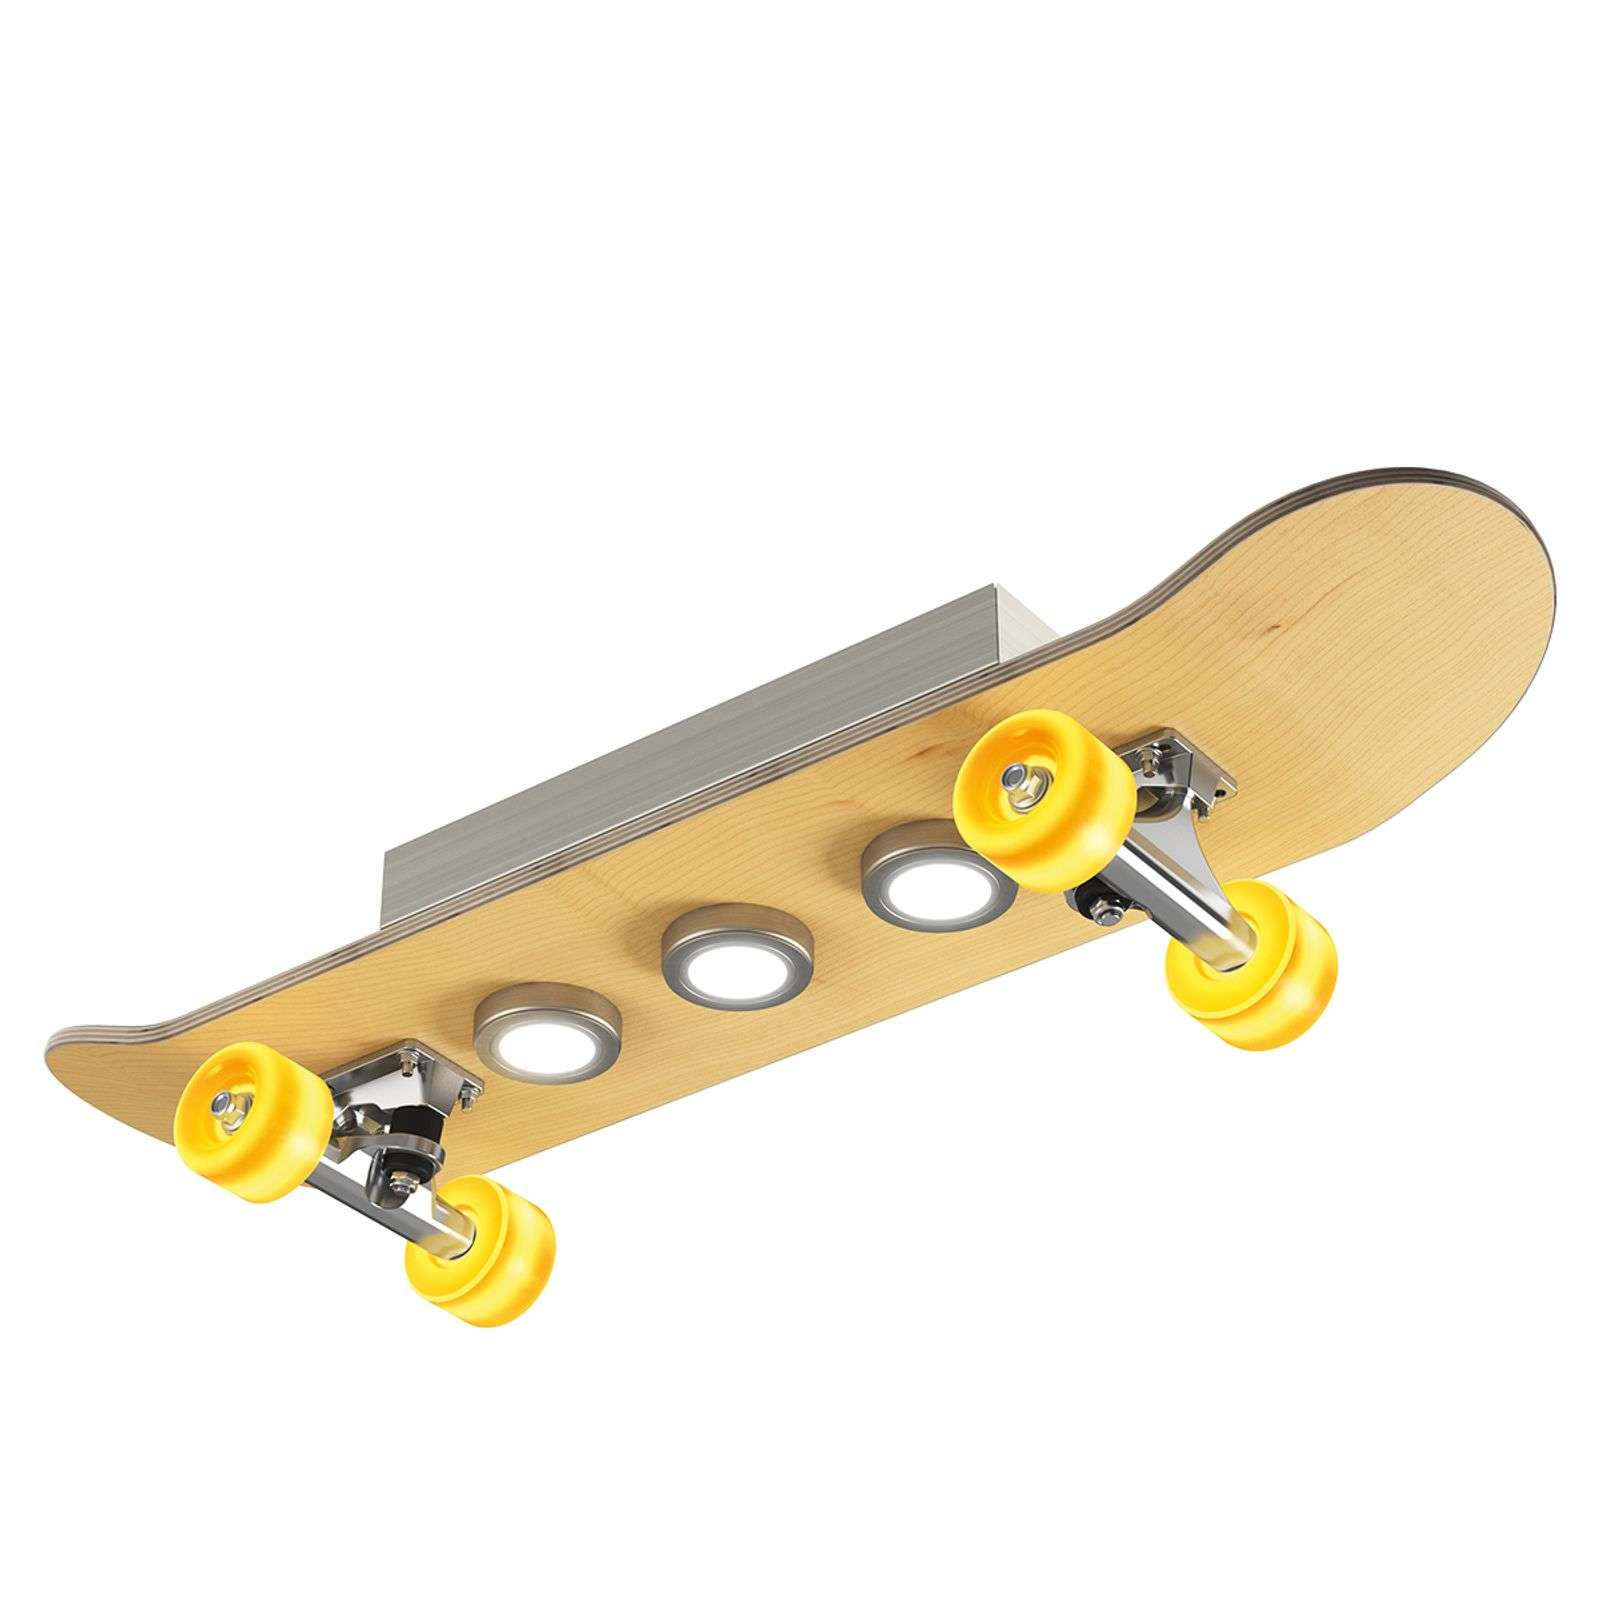 LED-plafondlamp Light Cruiser skateboard design